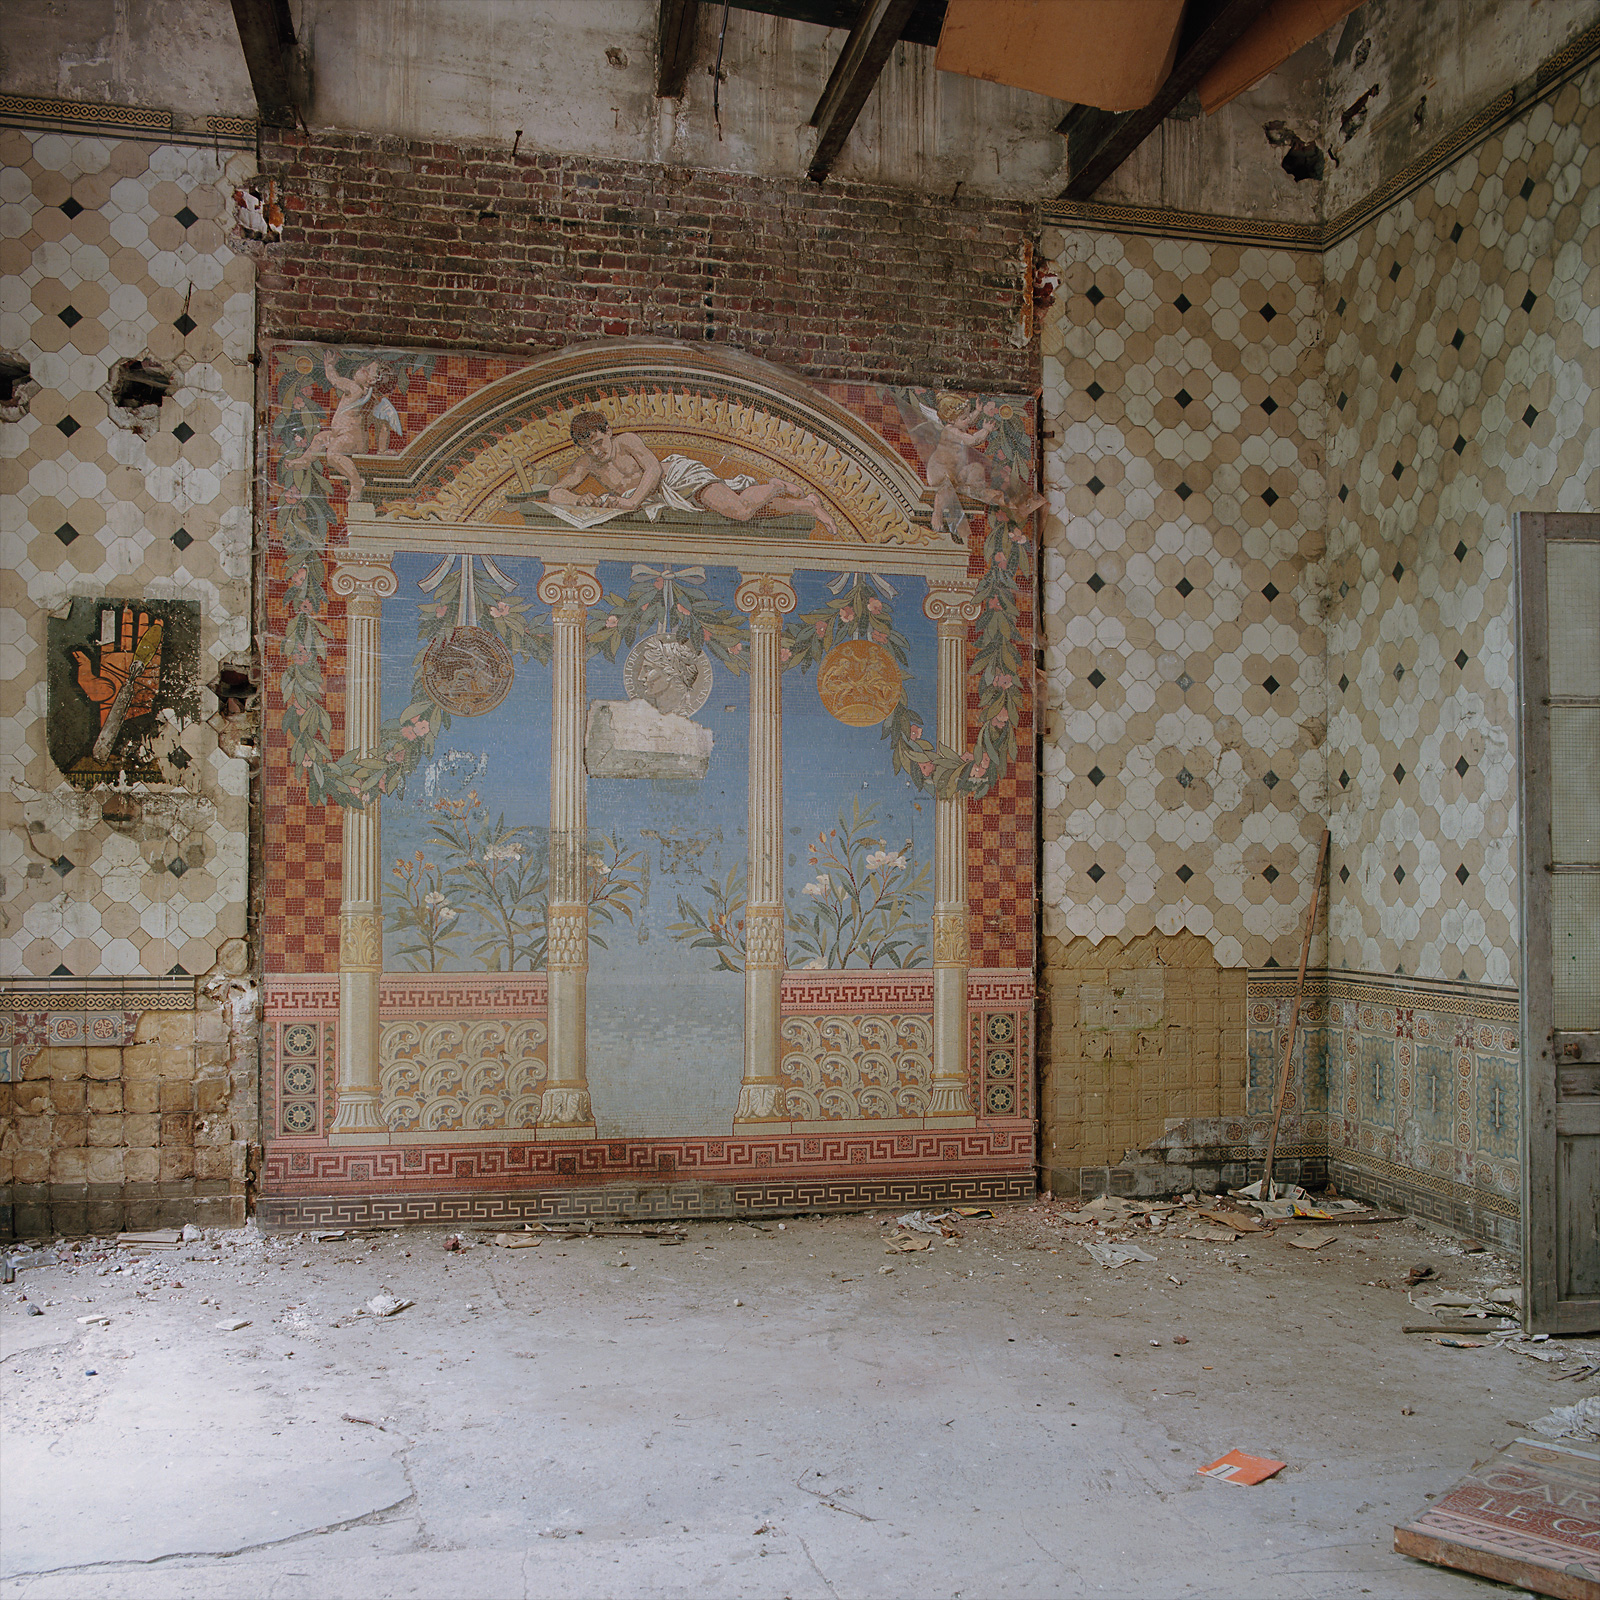 Quite possibly the old showroom. Parts of the mosaics have been removed at Kakelfabriken / The Tile Factory. France.